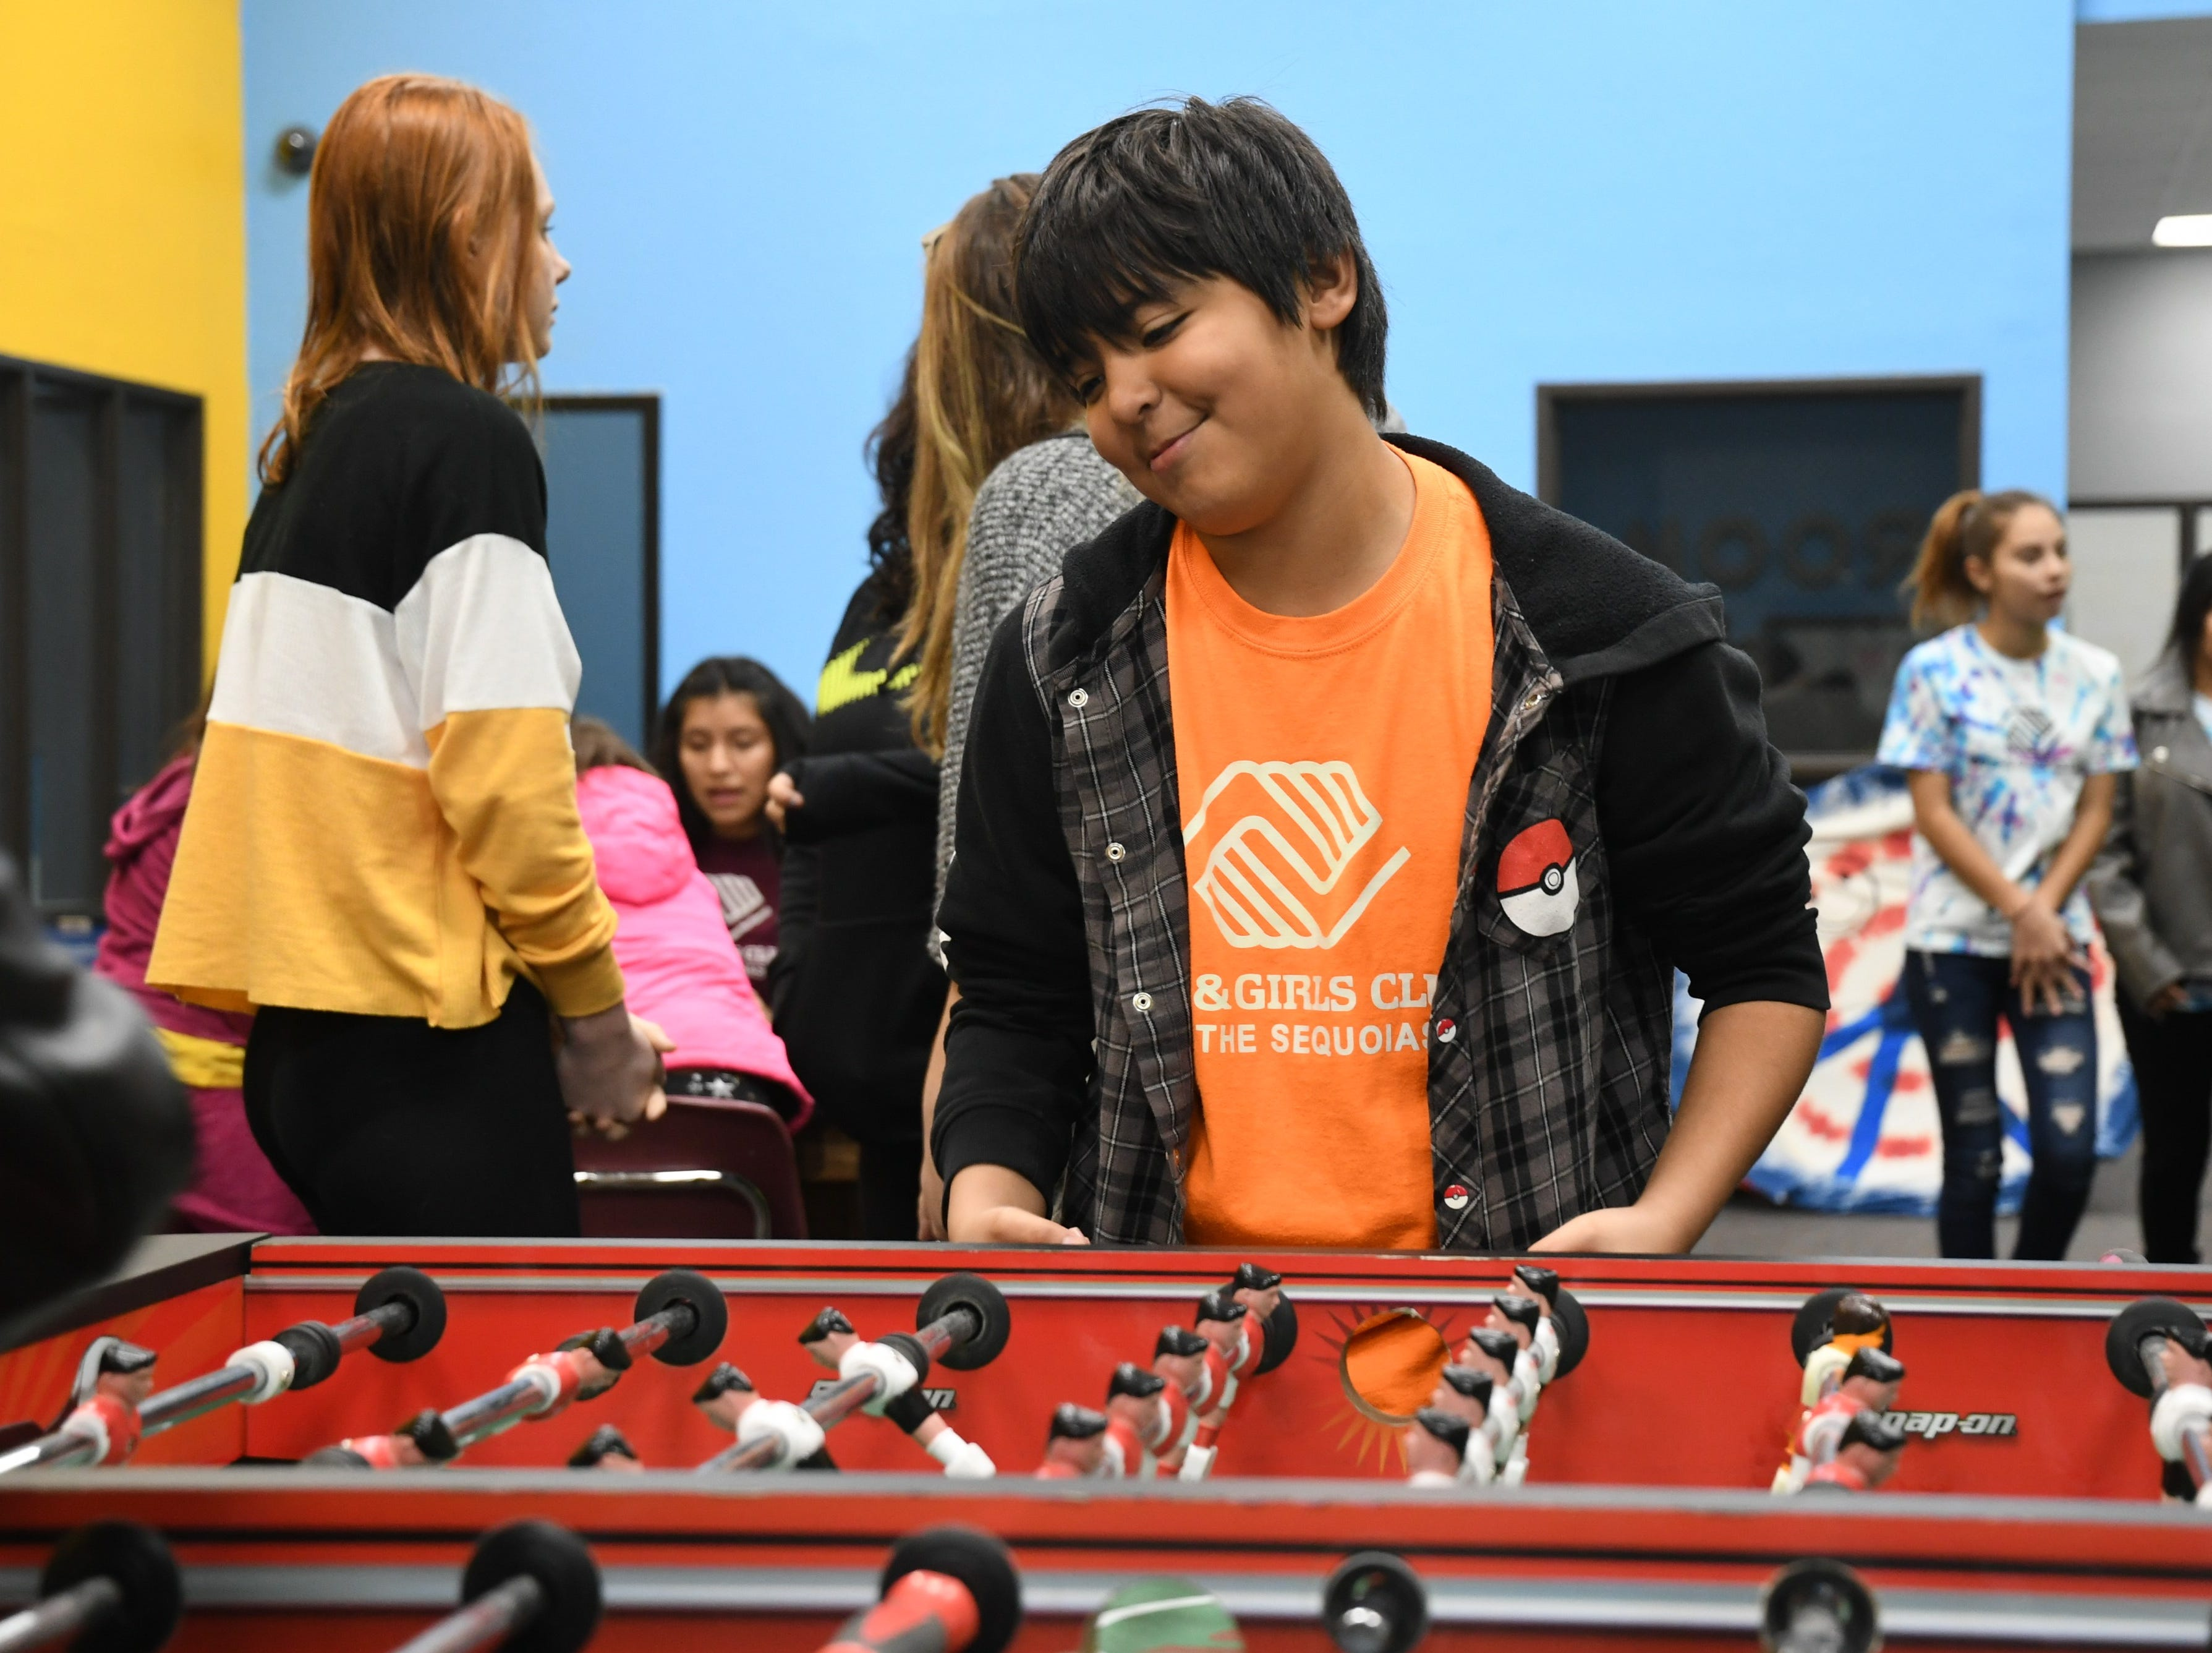 Boys and Girls Club members play at the Visalia center before marching in recognition of MLK's legacy.